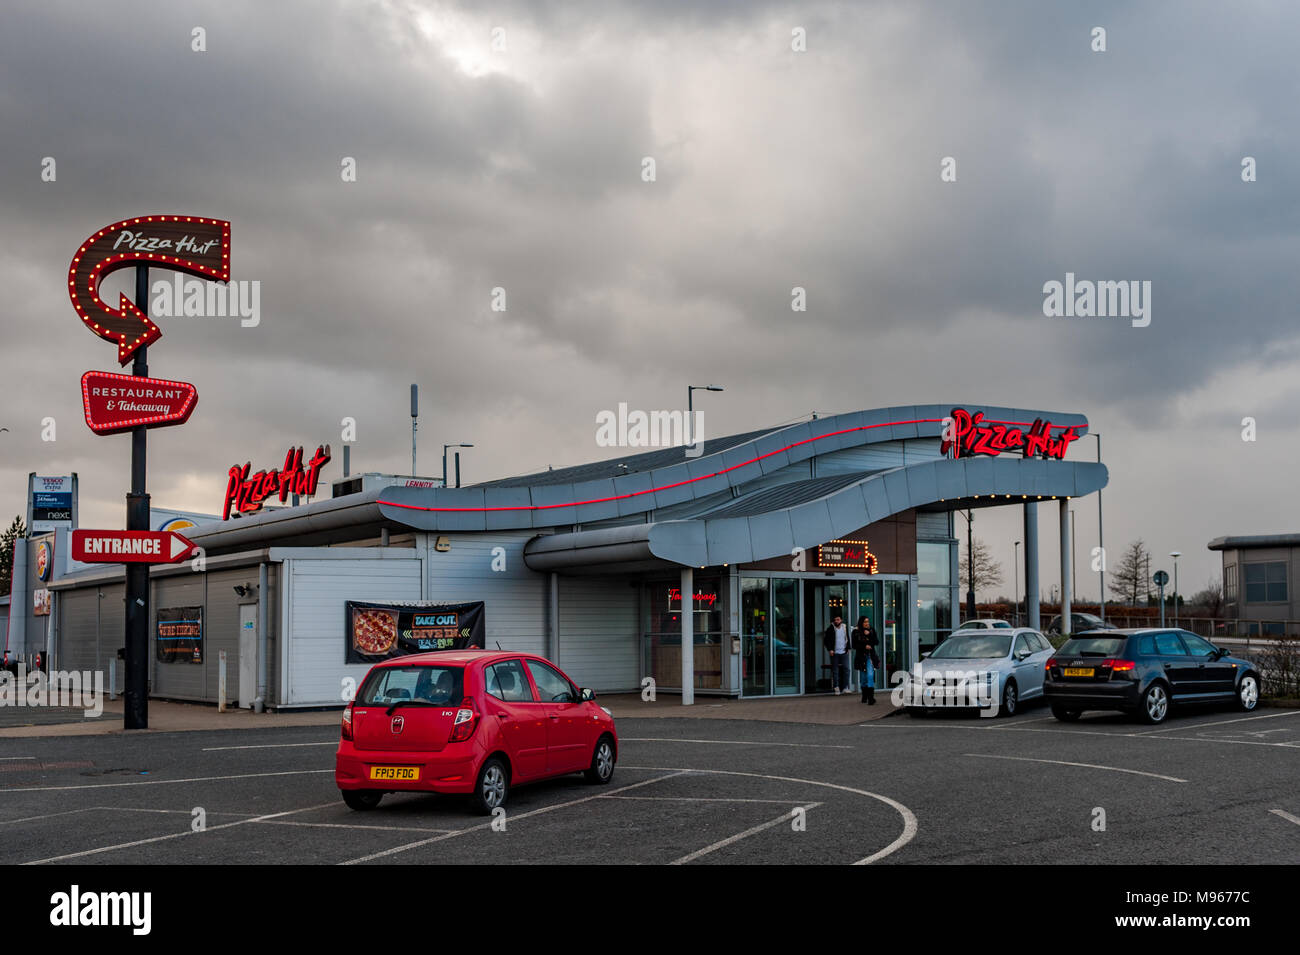 Fast Food Restaurant Pizza Hut At Arena Retail Park Coventry West Midlands Uk With Copy Space Stock Photo Alamy